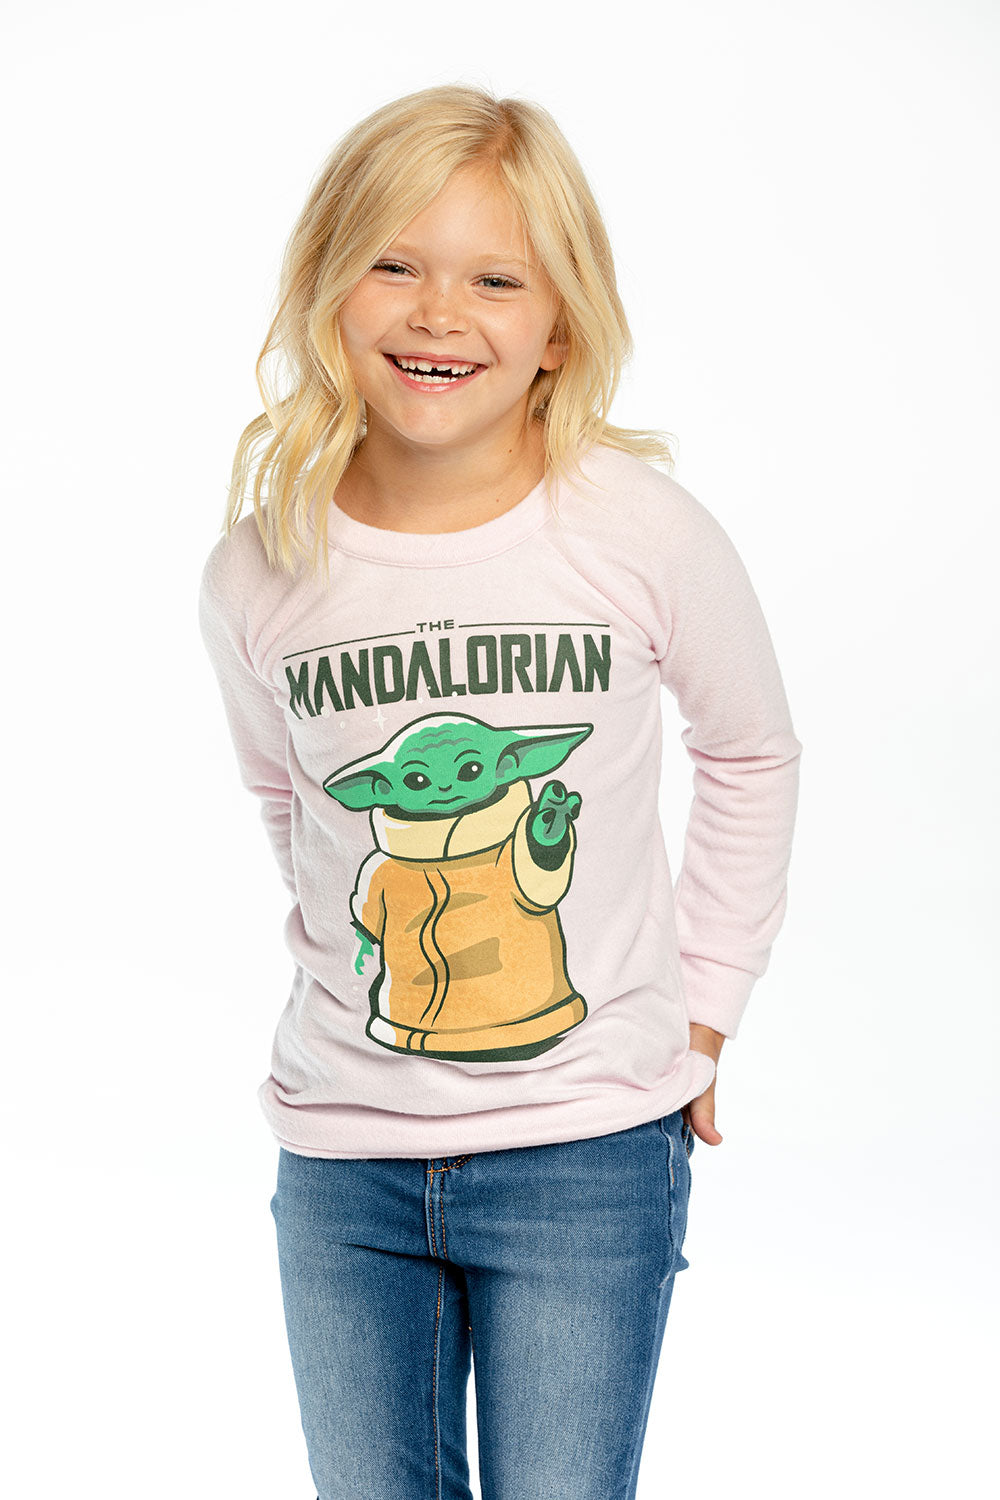 Star Wars - The Mandalorian Child